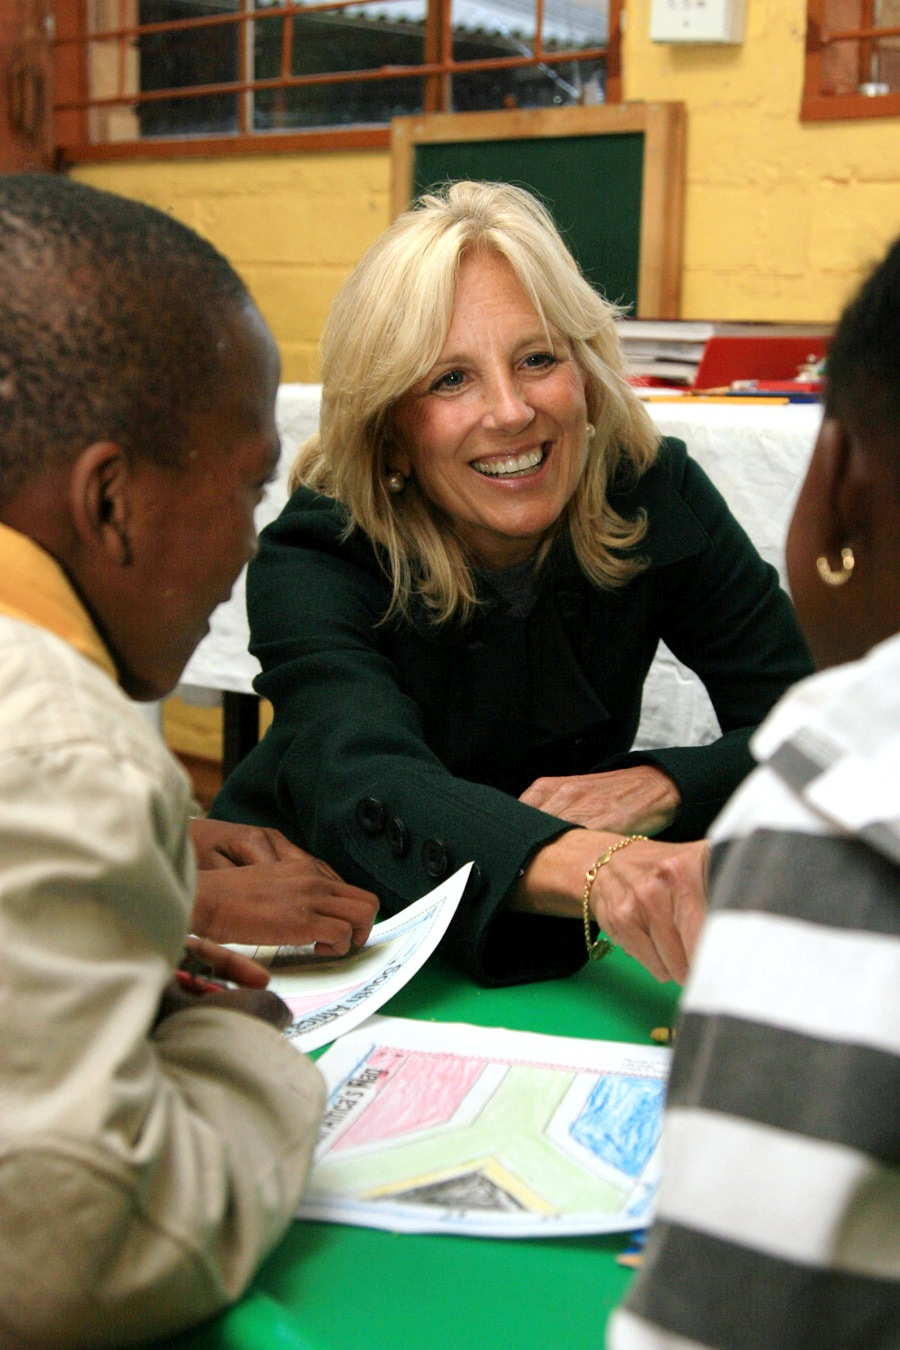 Dr. Jill Biden Helps Children With Their Coloring Skills